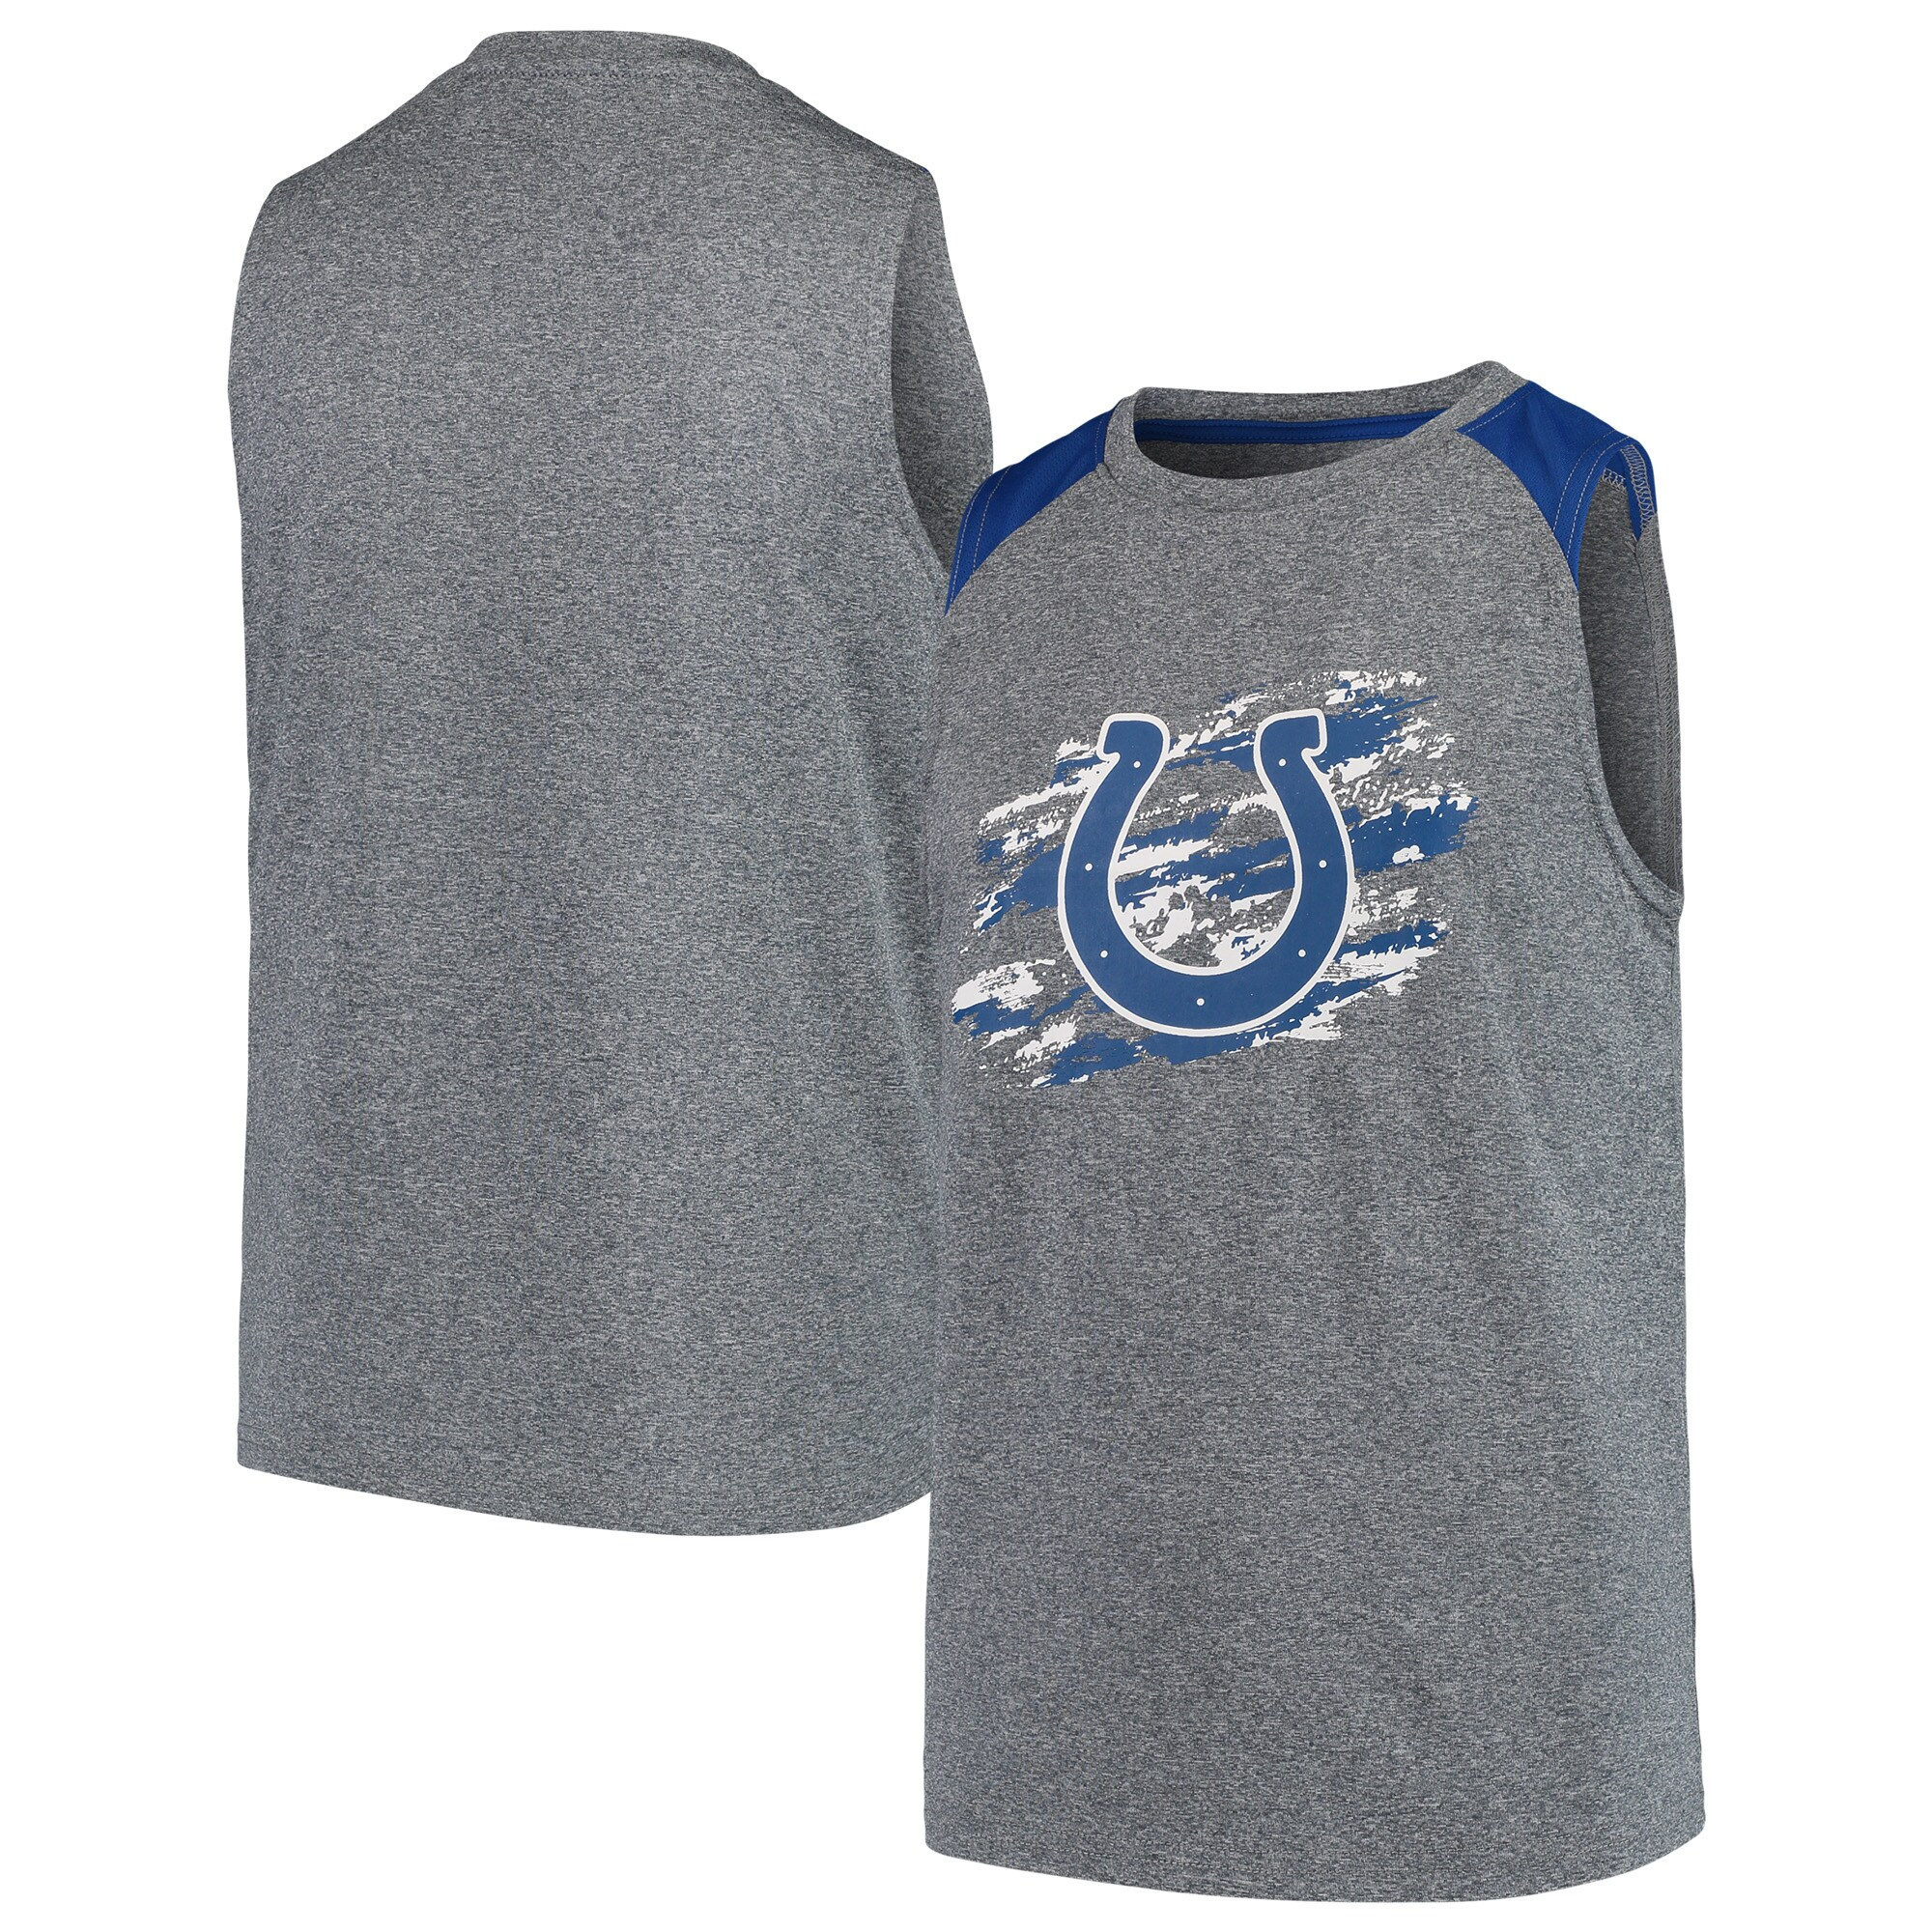 Indianapolis Colts NFL Pro Line by Fanatics Branded Youth True Colors Sleeveless T-Shirt - Heathered Gray